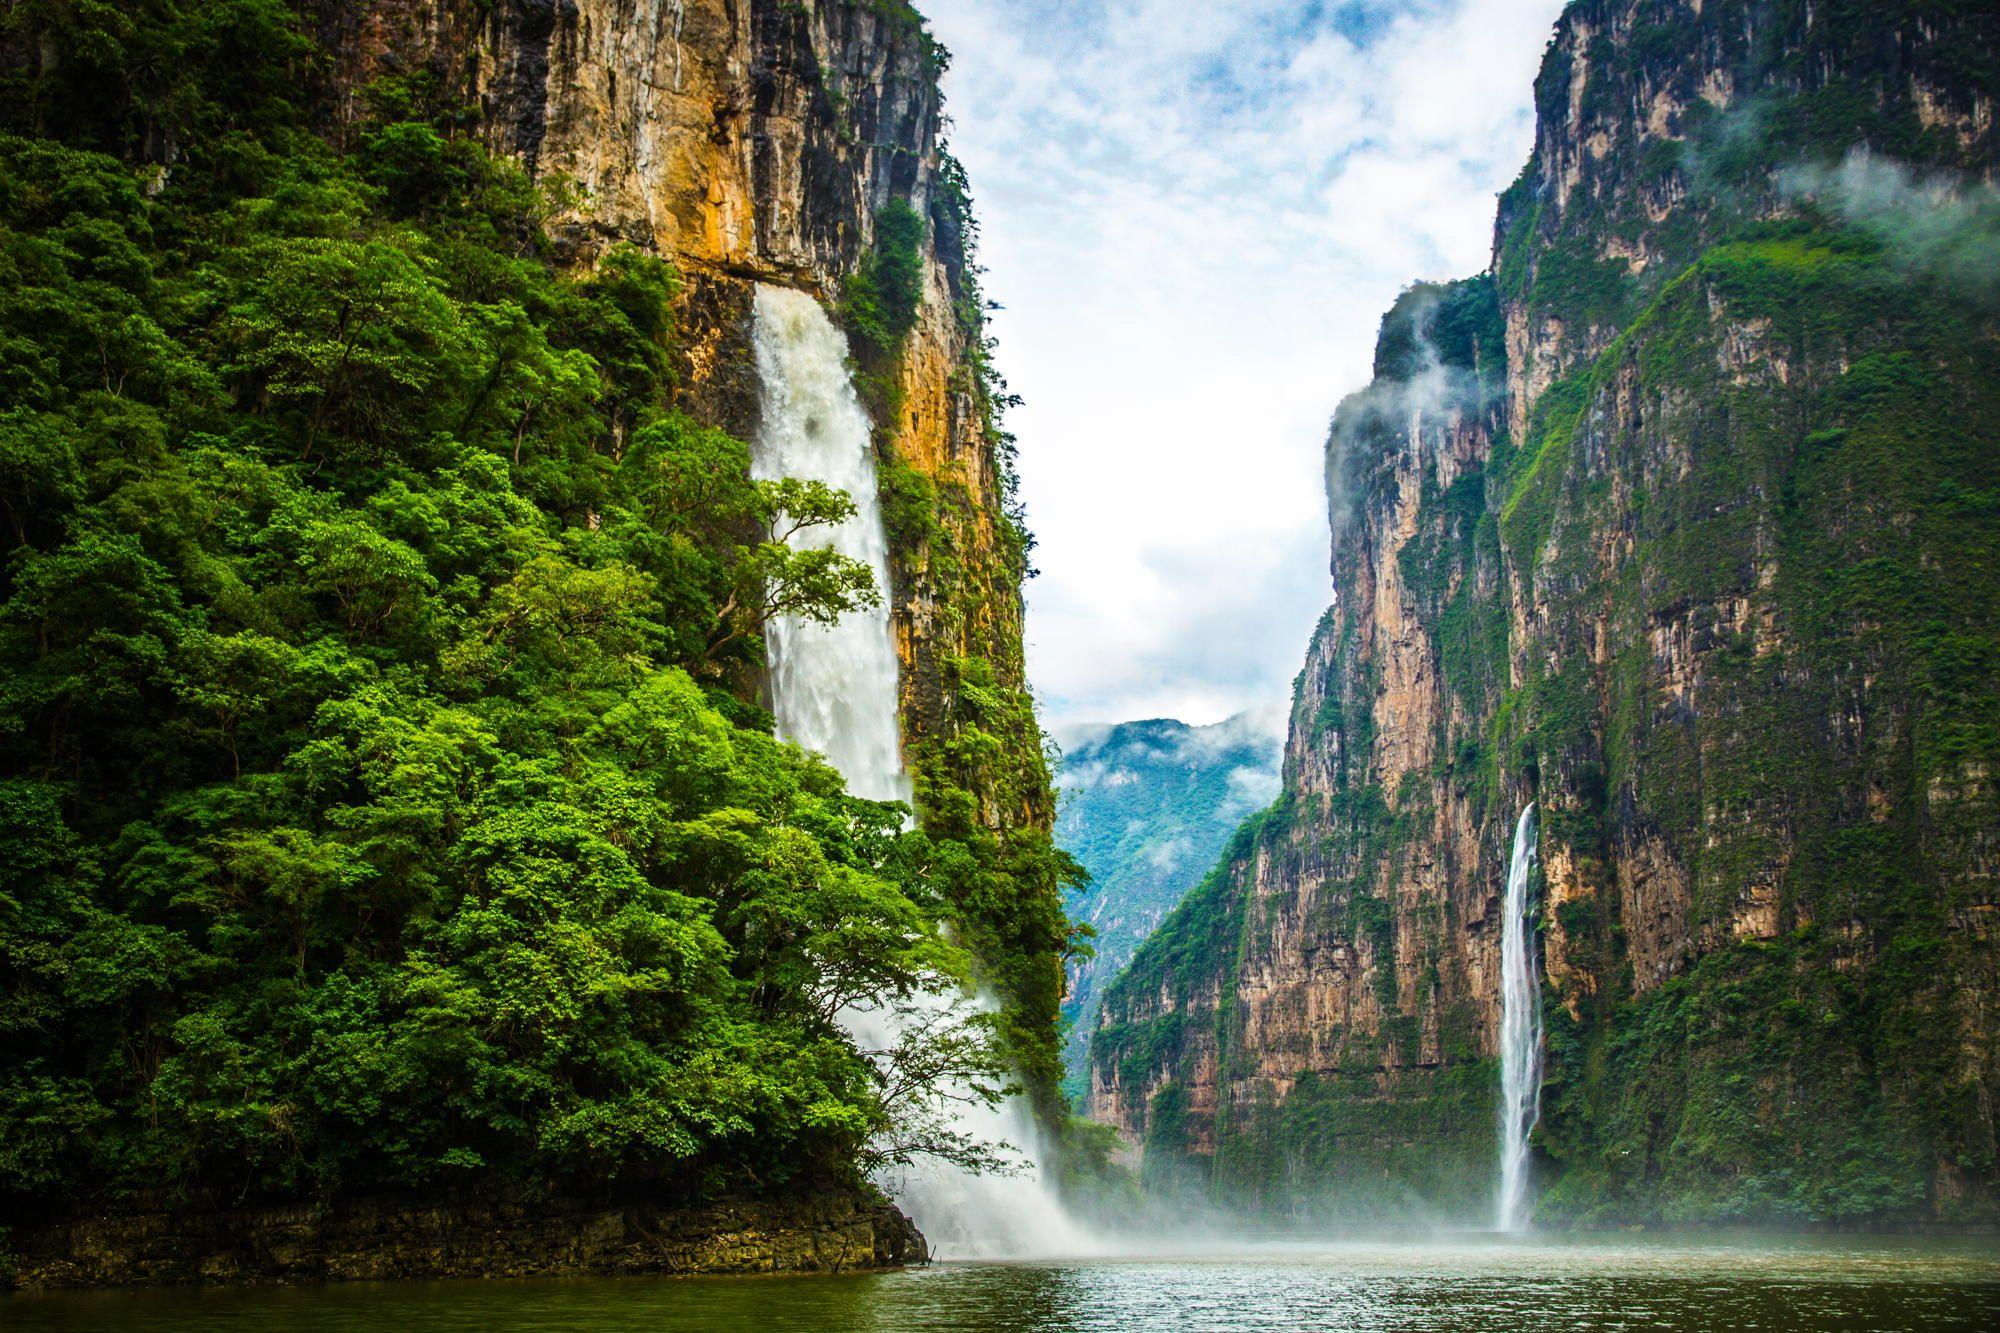 Photograph Sumidero Canyon by Travis White on 500px